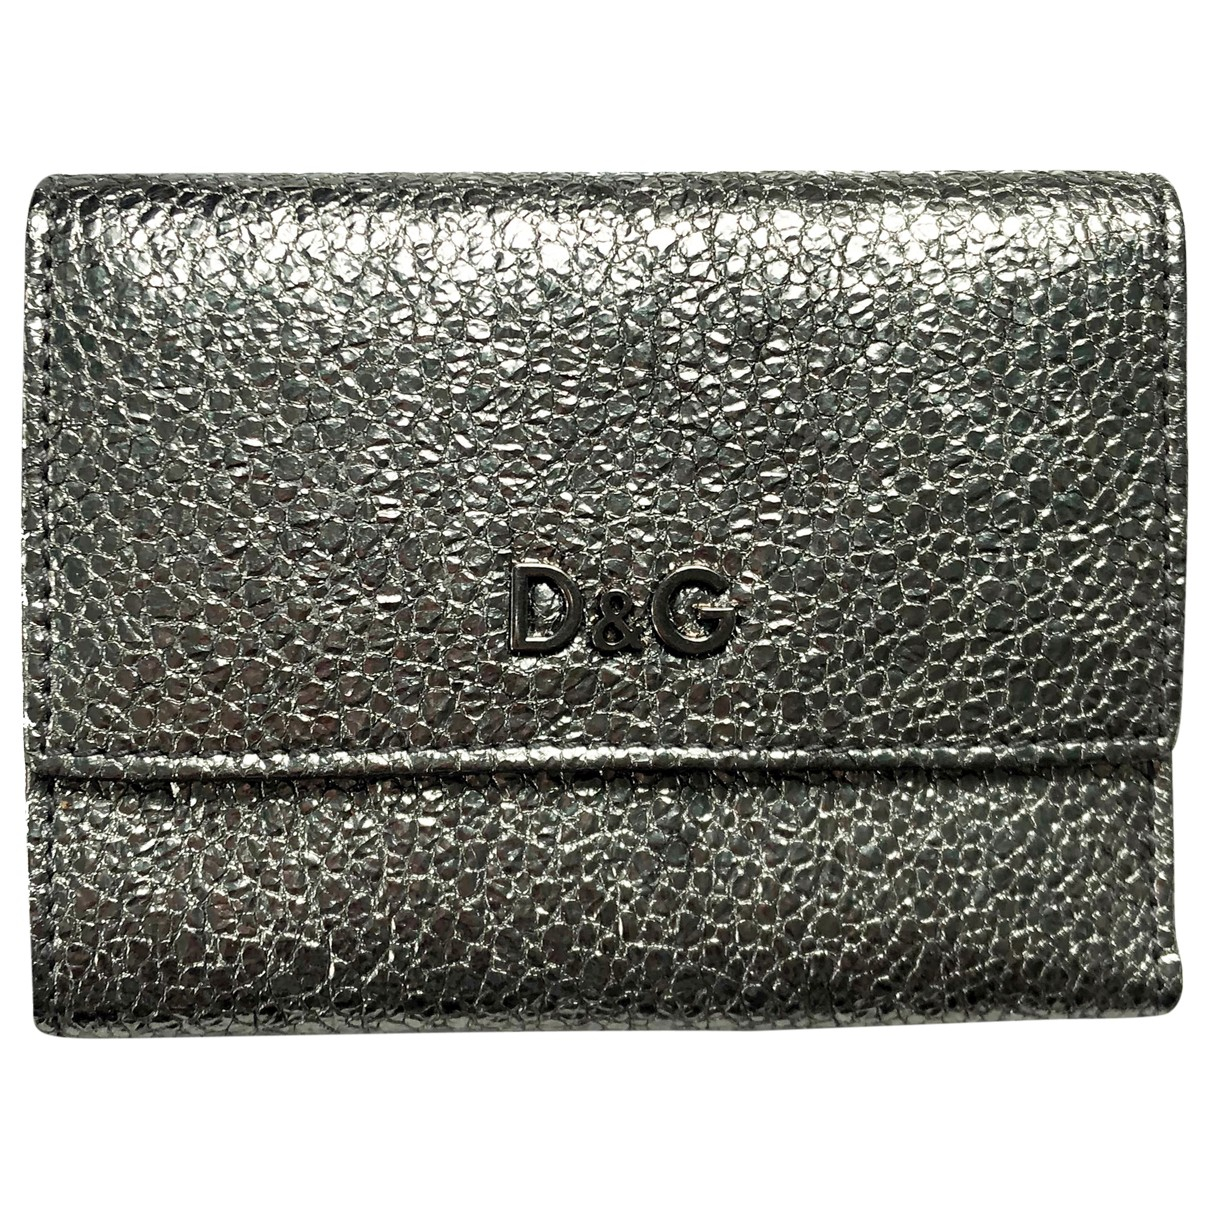 D&g \N Silver Leather wallet for Women \N